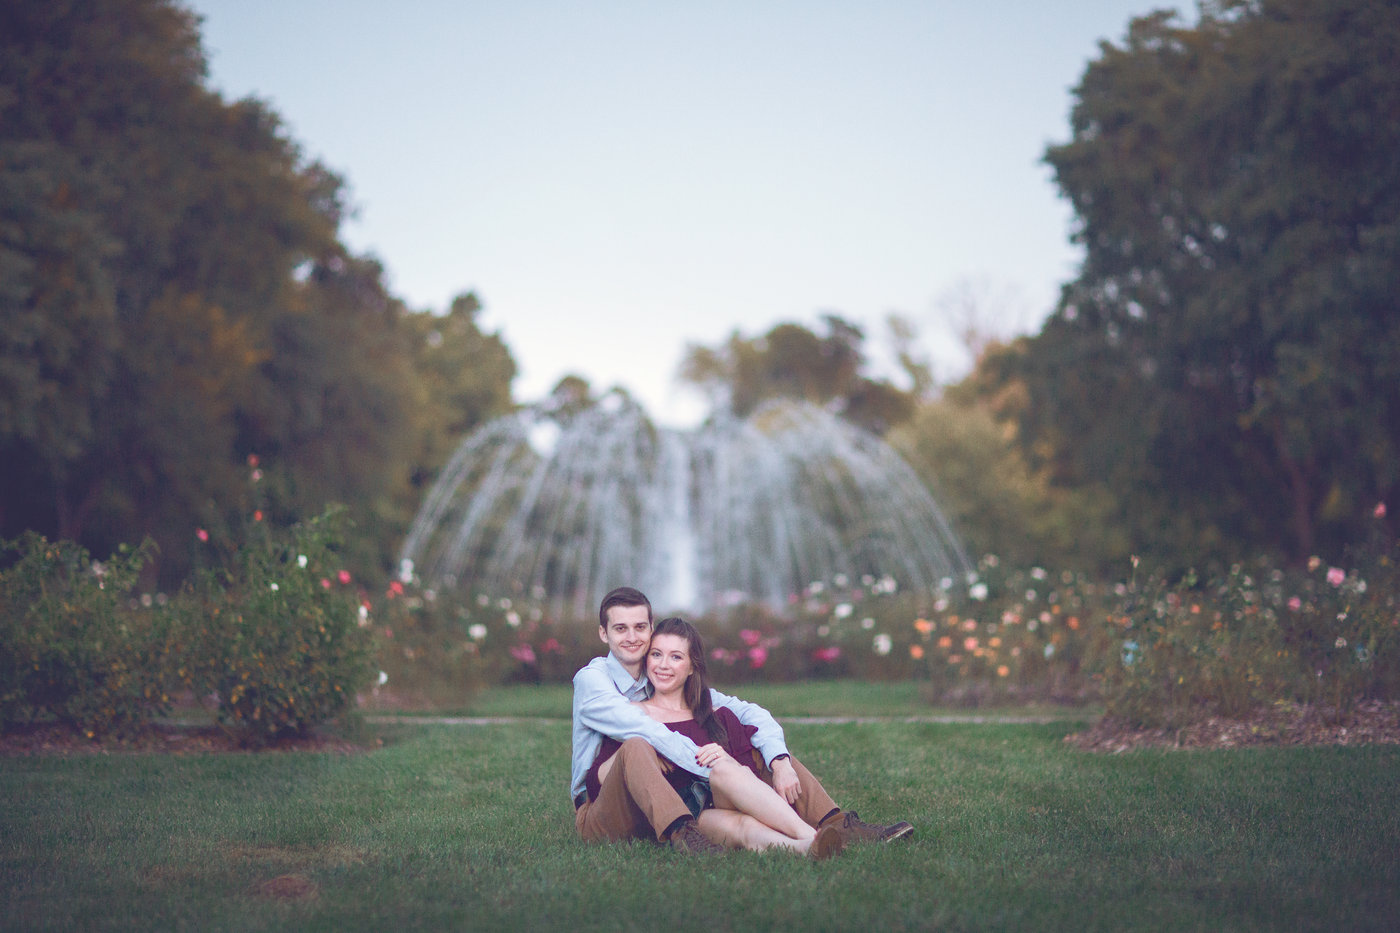 View More: http://happypixelsdesign.pass.us/casey-and-dan-engagement-park-of-roses